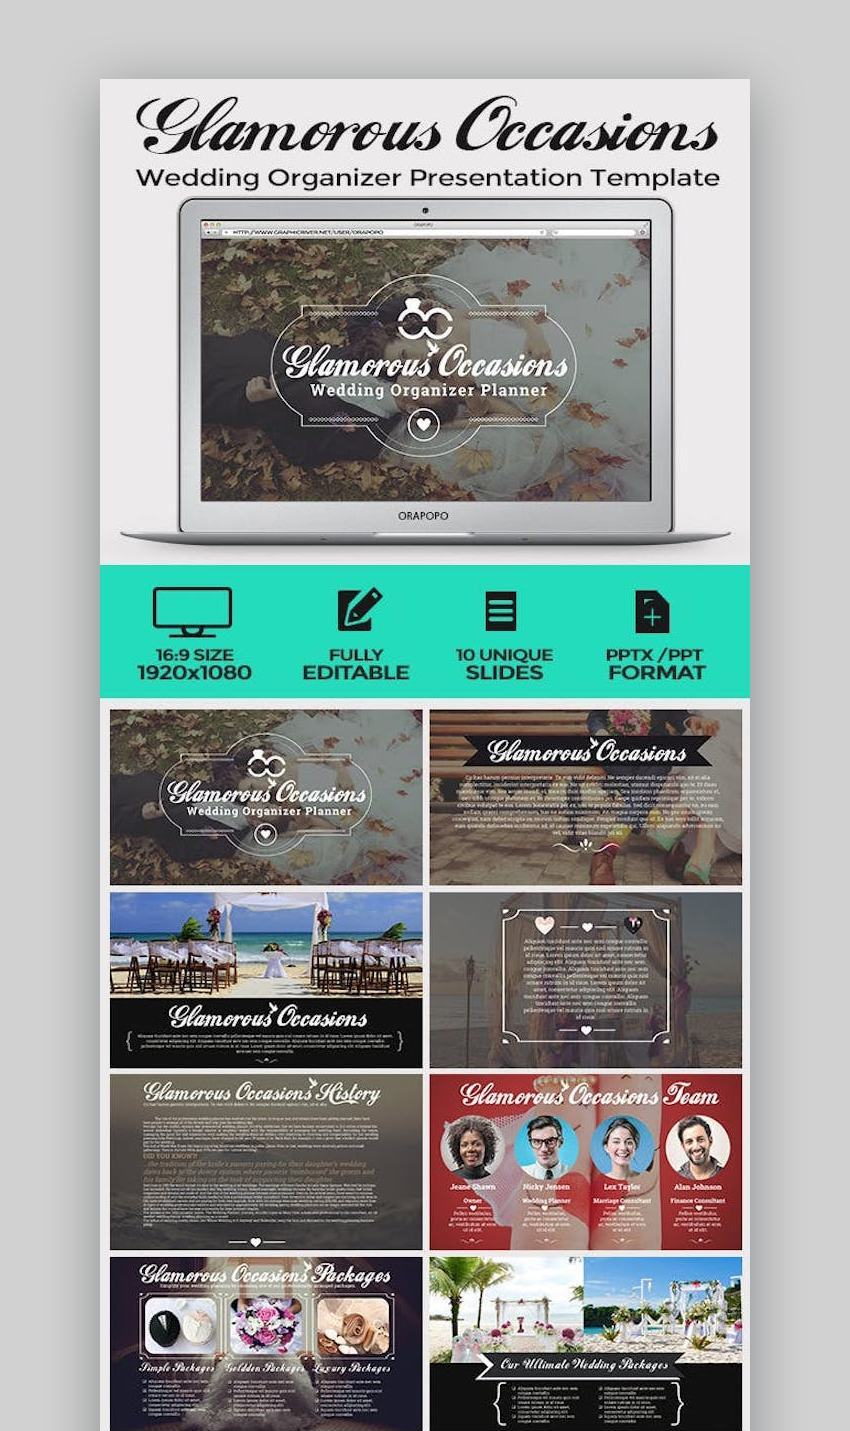 Wedding Organizer Presentation Template